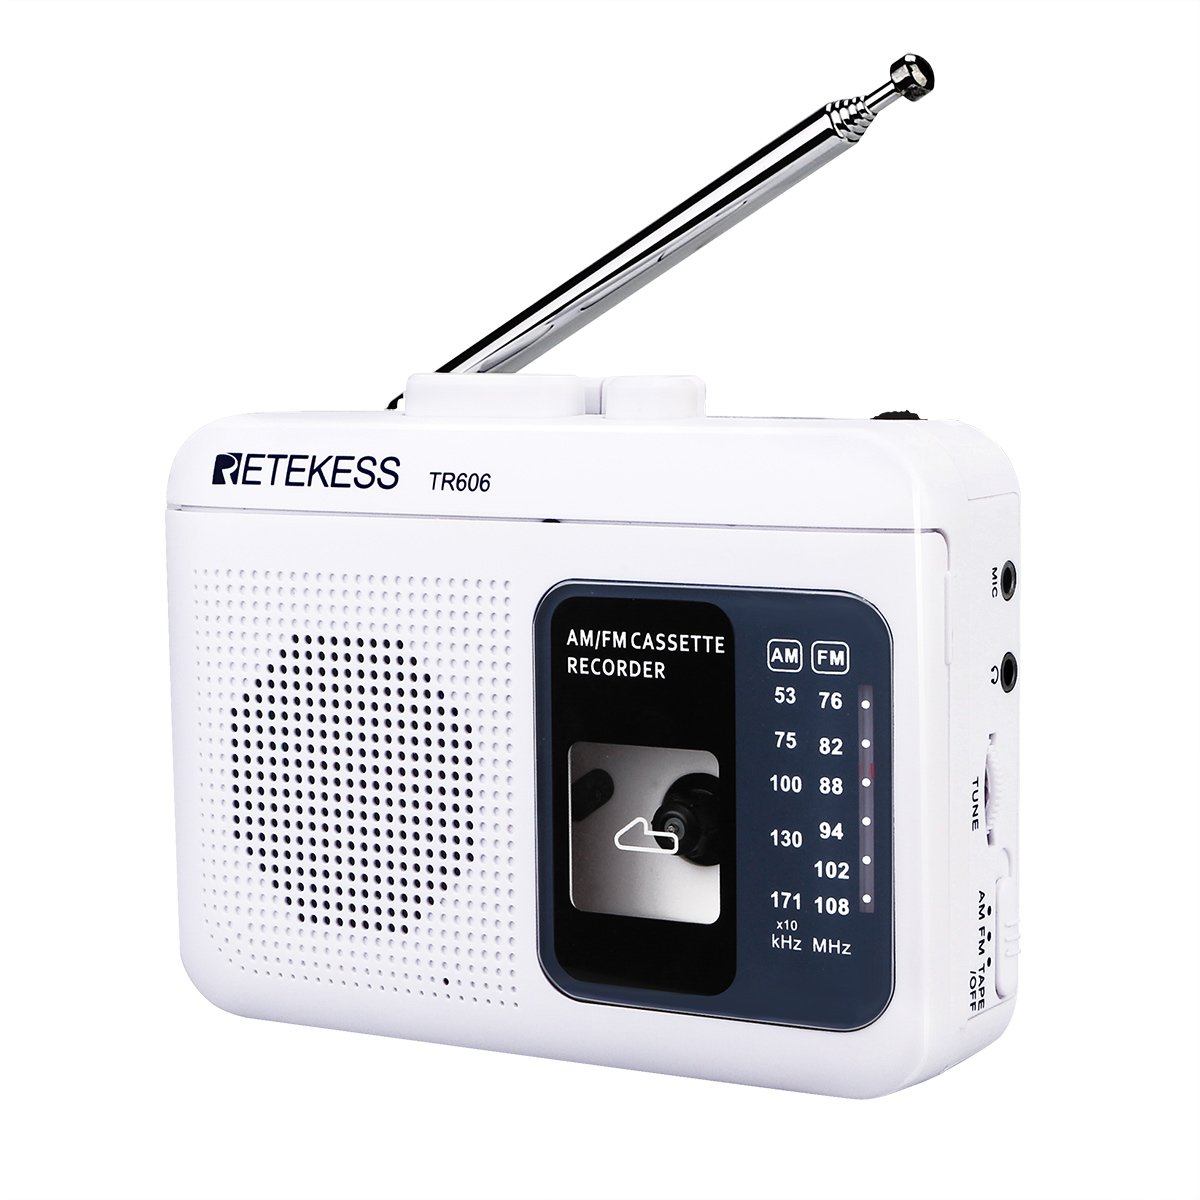 Retekess TR606 FM/AM Portable <font><b>Radio</b></font> with Cassette Playback Voice Recorder <font><b>Built</b></font>-<font><b>in</b></font> Amplifier image